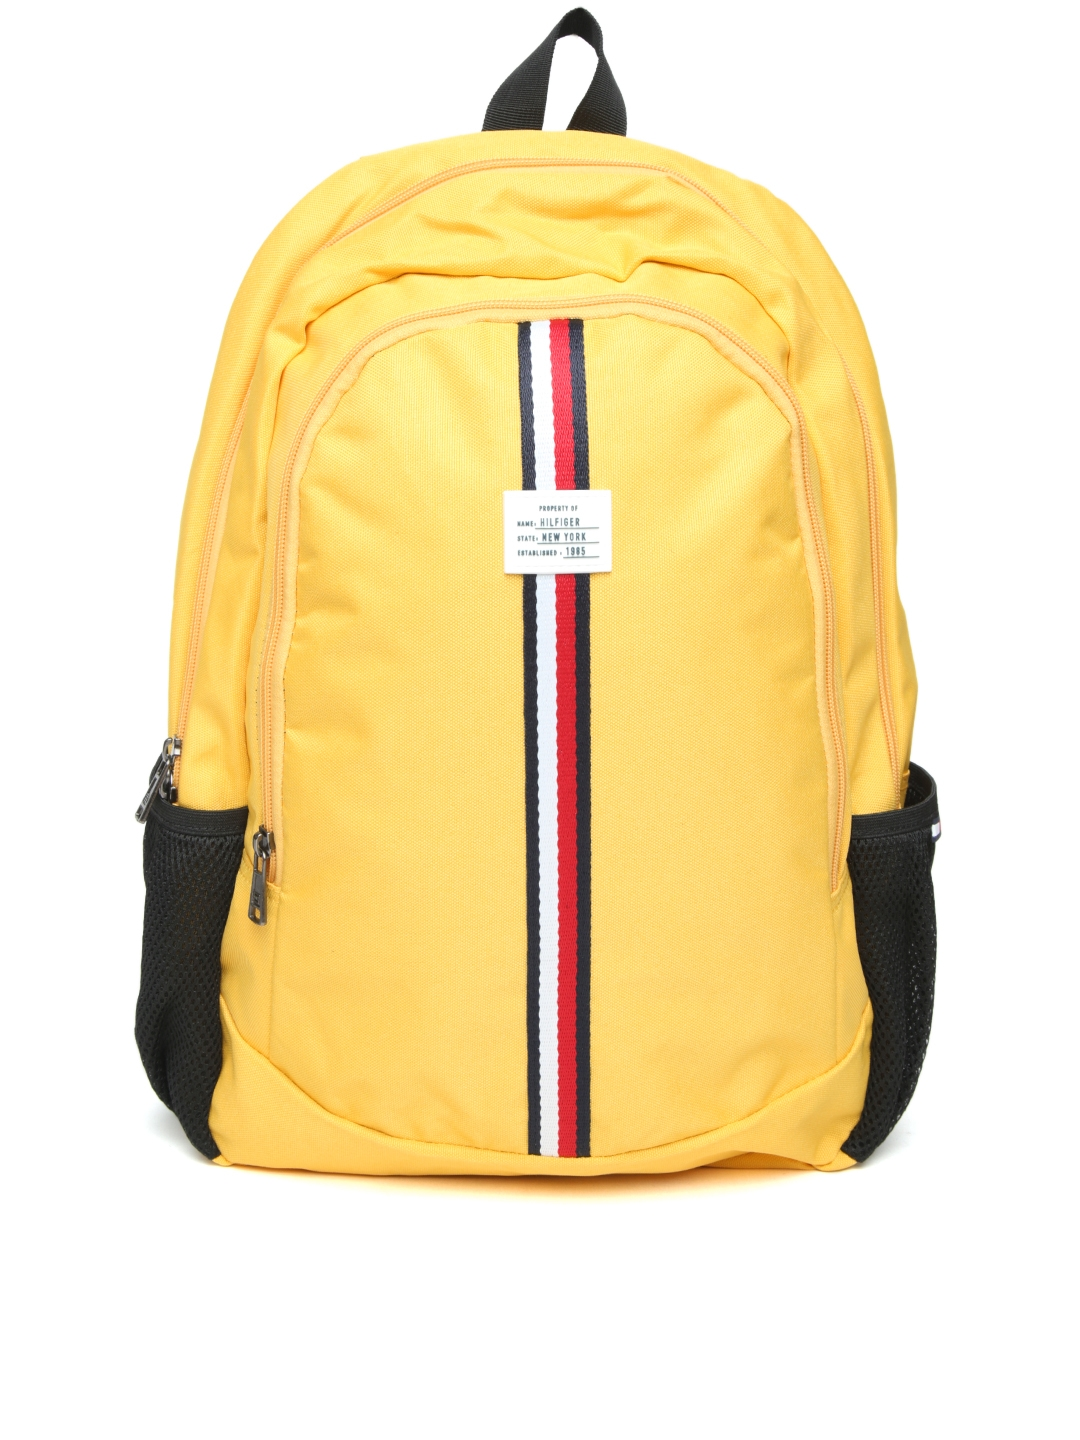 f0e4c3516295 Tommy Hilfiger Unisex Yellow Laptop Backpack